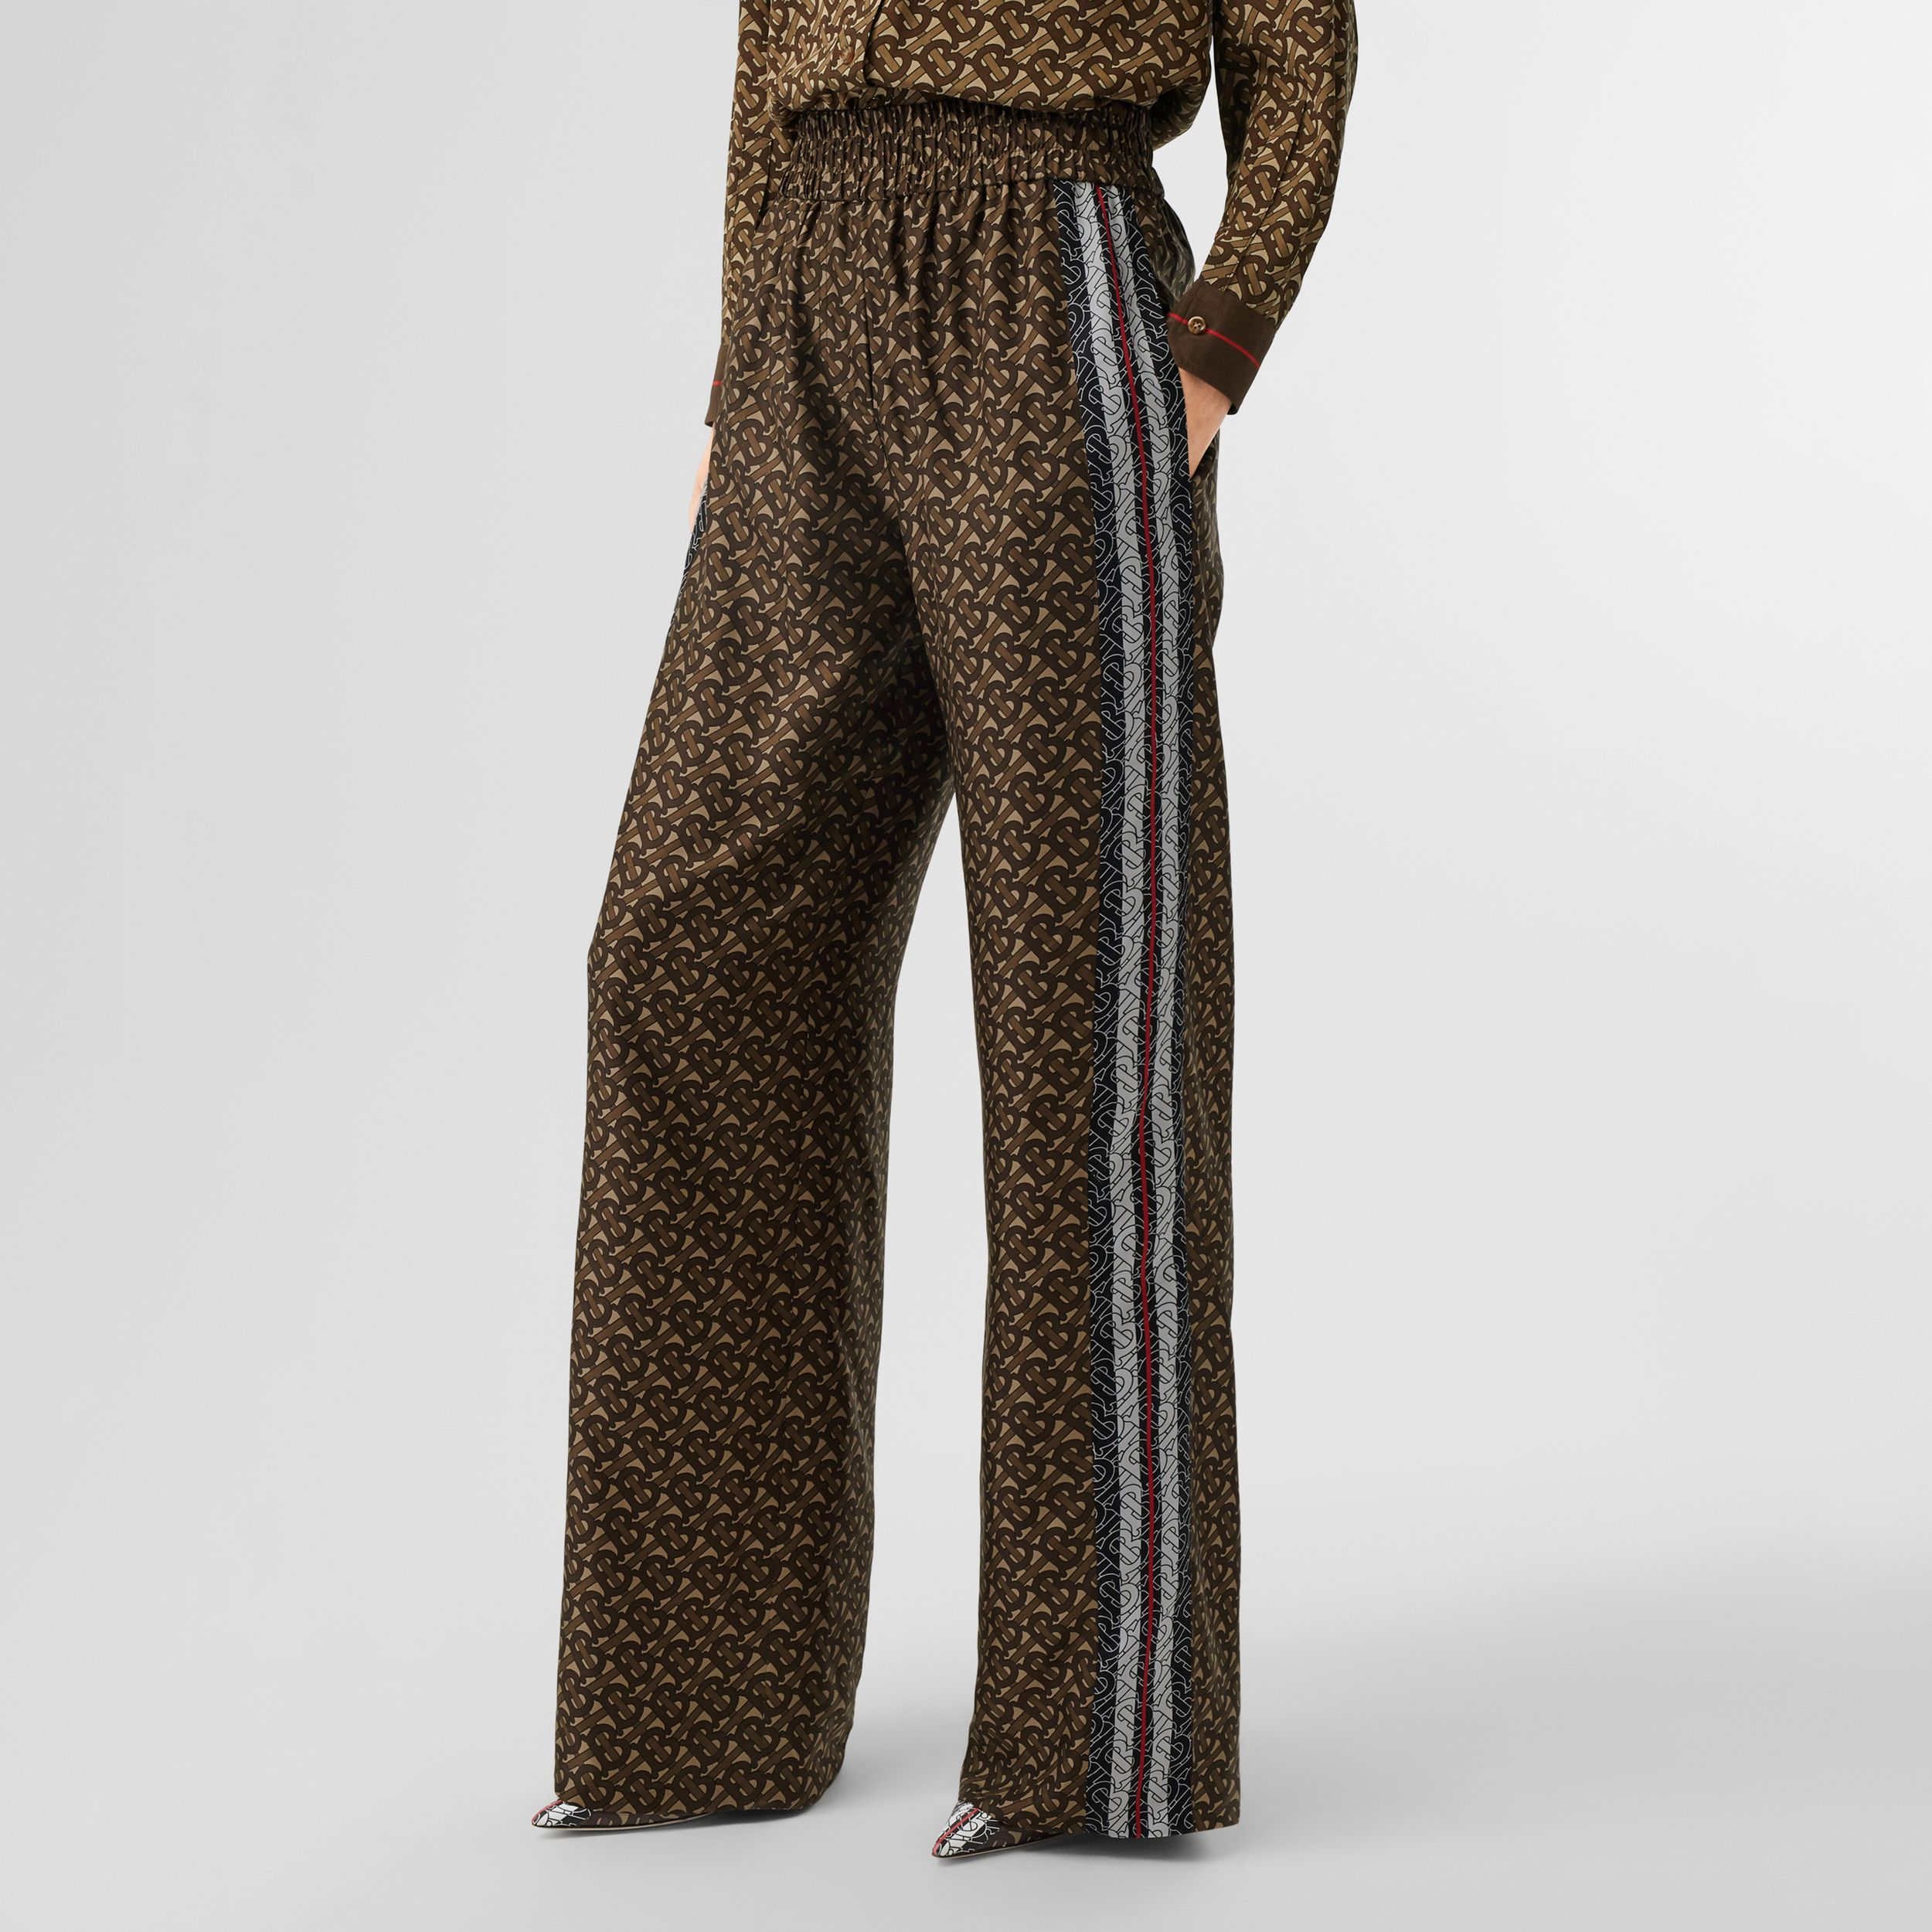 Monogram Stripe Print Silk Wide-leg Trousers in Bridle Brown - Women | Burberry - 3